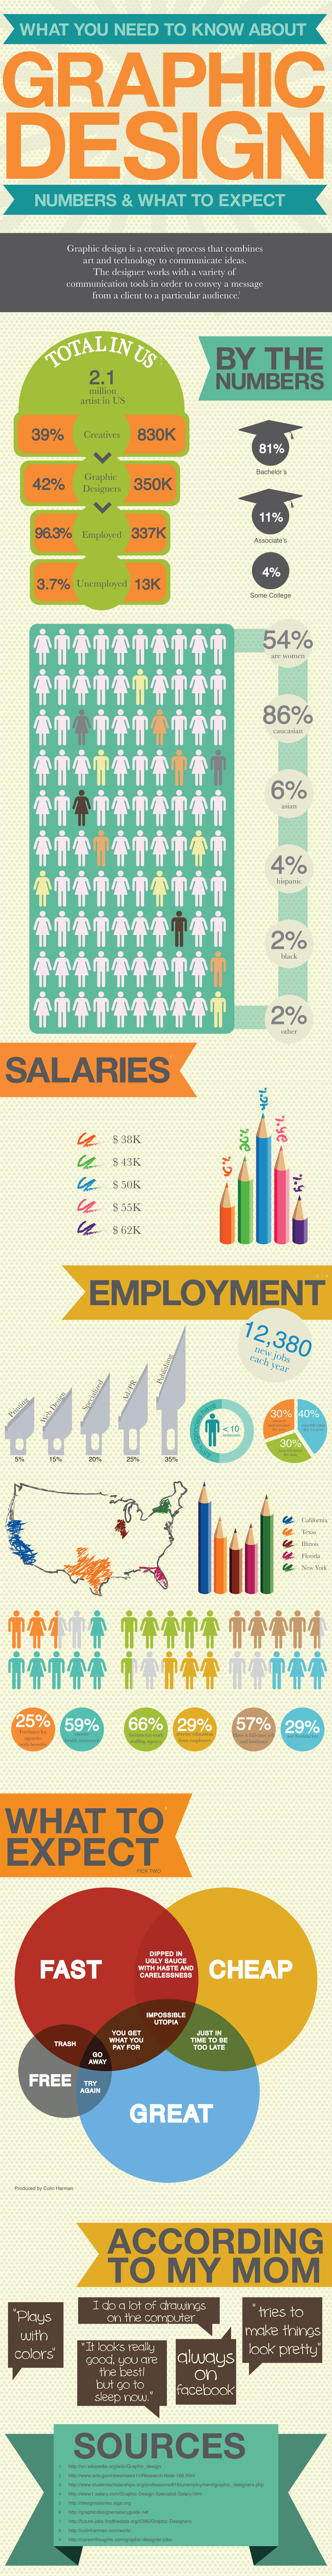 Careers In Numbers: Graphic Design